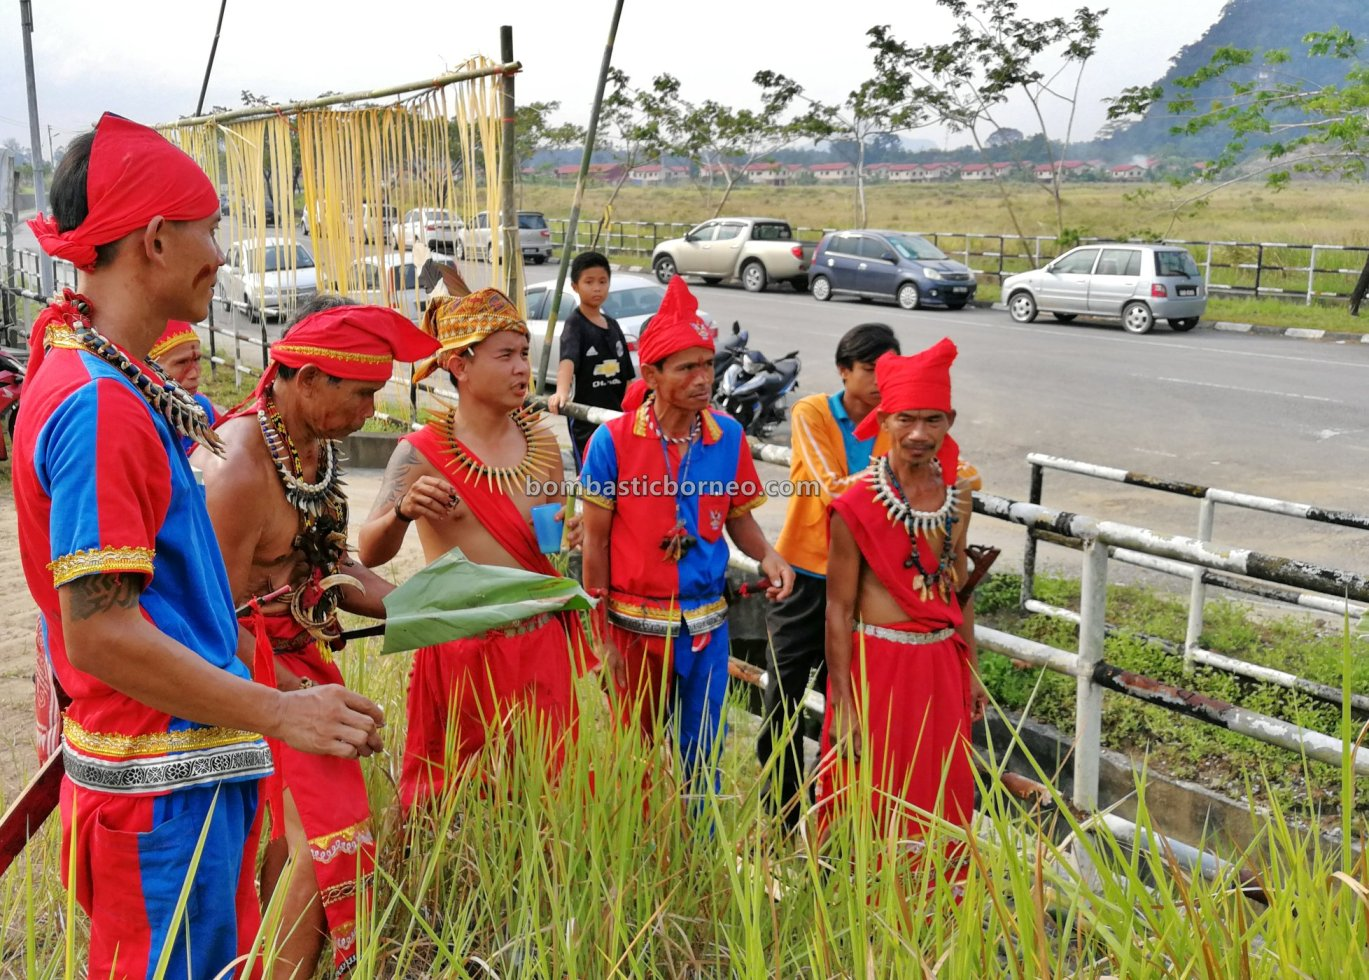 Pesta Nyarok Biya, Bengoh Dam Resettlement Scheme, traditional, culture, dayak bidayuh, Ethnic, native, Kampung Semban, Borneo, Kuching, Padawan, tourist attraction, cross border, 探索婆罗洲传统文化, 砂拉越达雅丰收节,